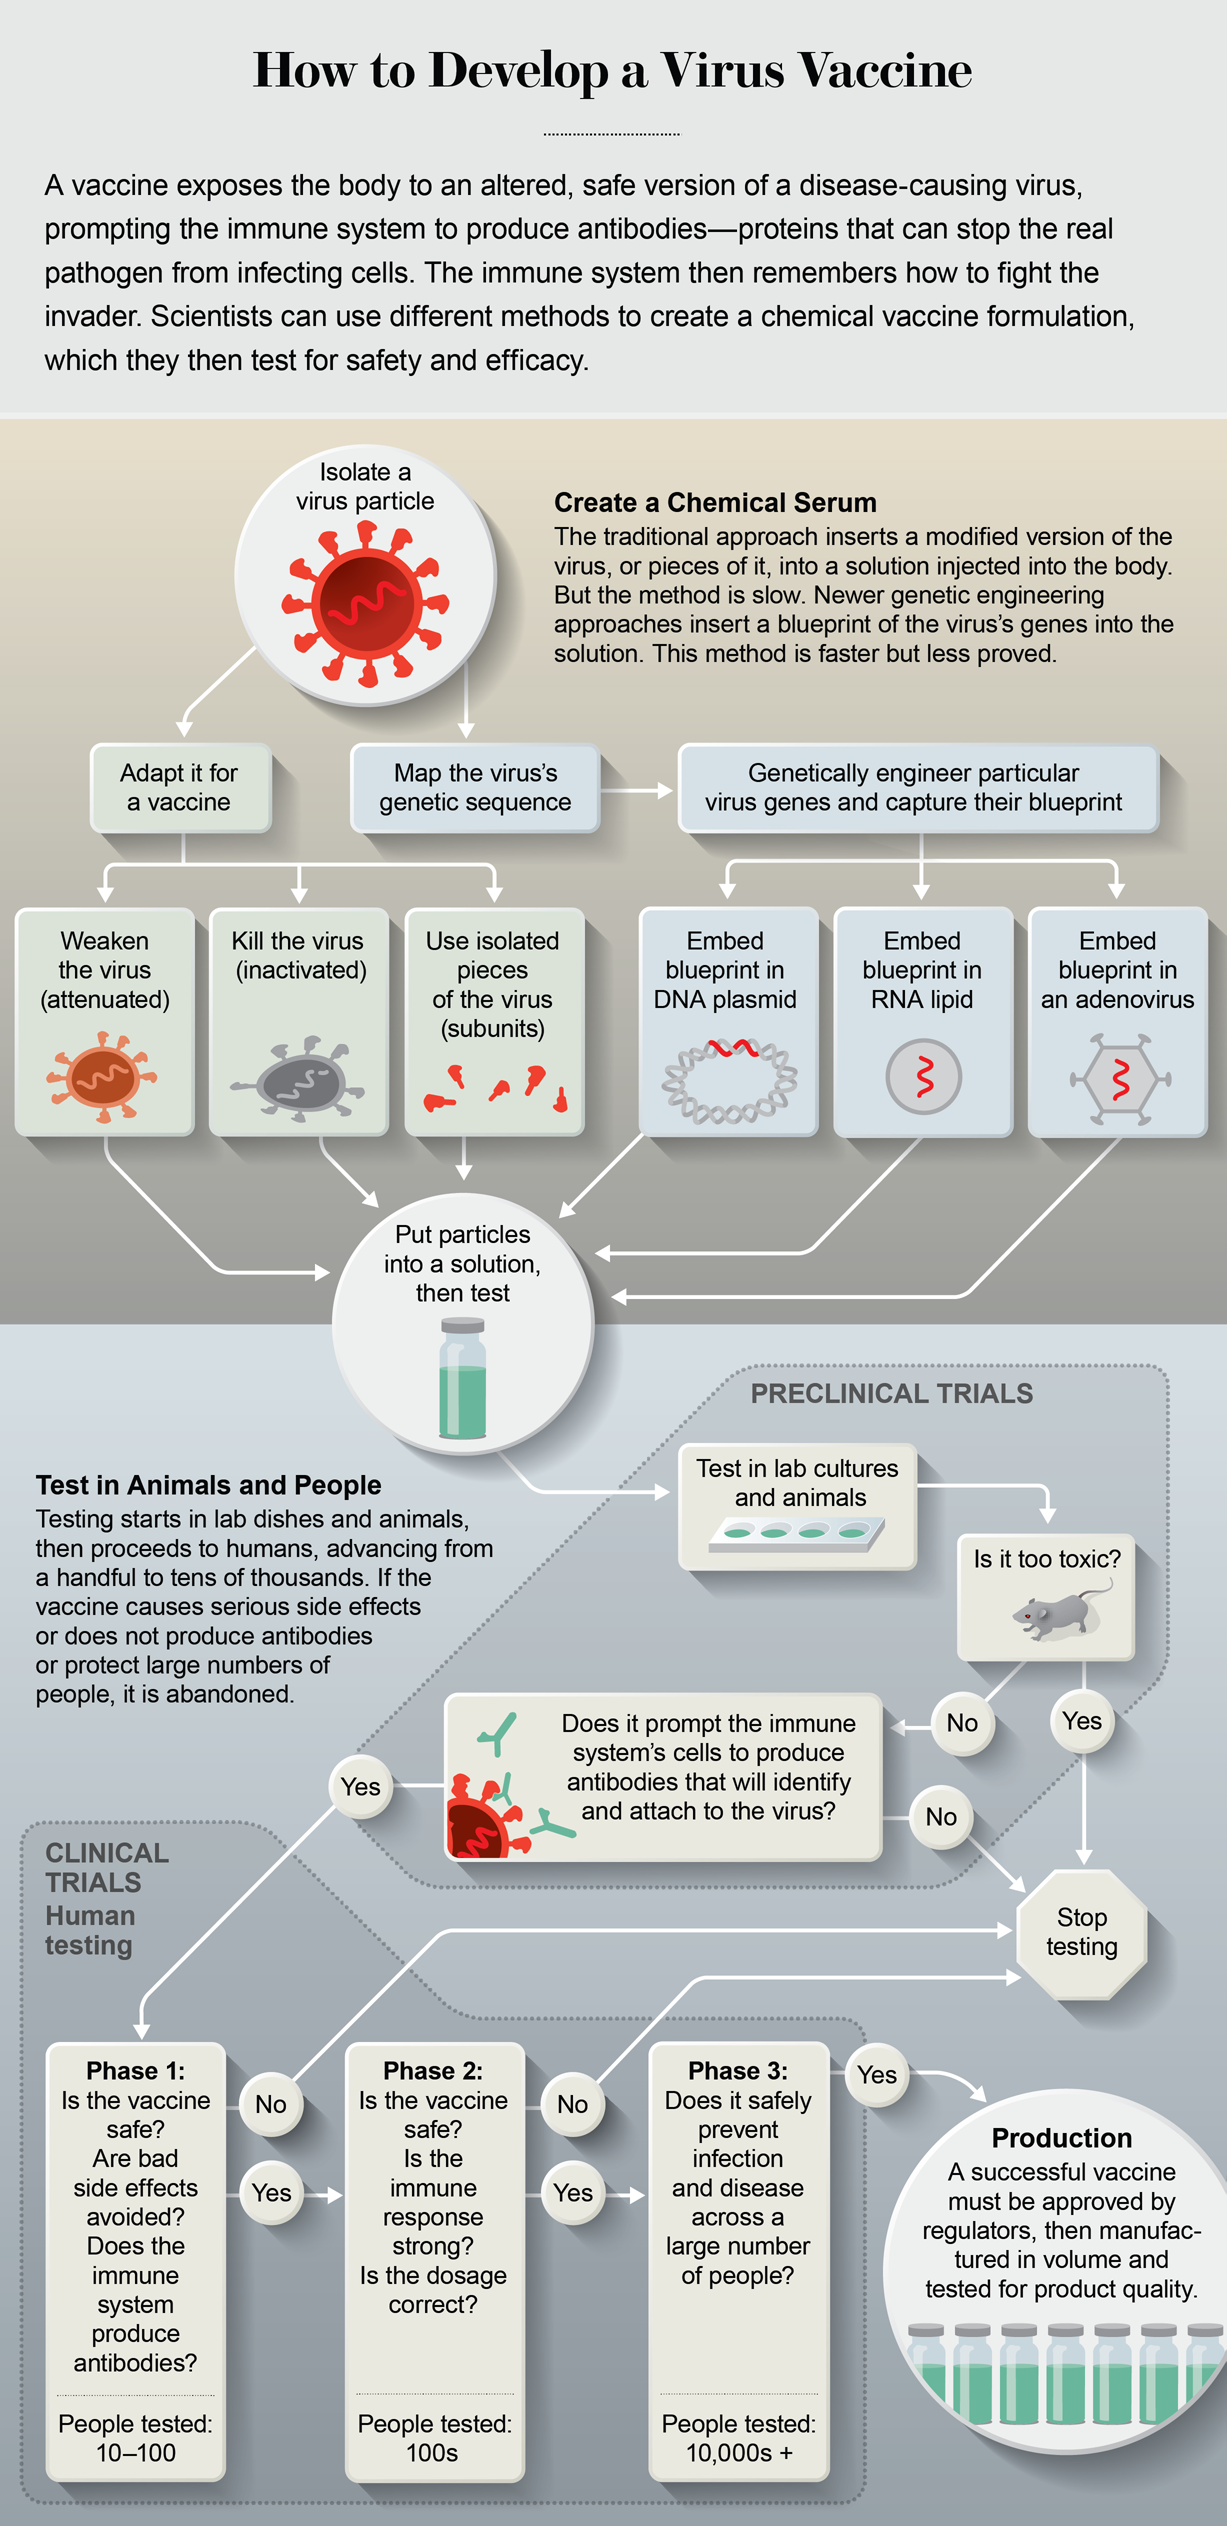 Flow chart outlines the steps of vaccine development, from isolating a virus particle to creating a chemical serum and testing for safety and efficacy